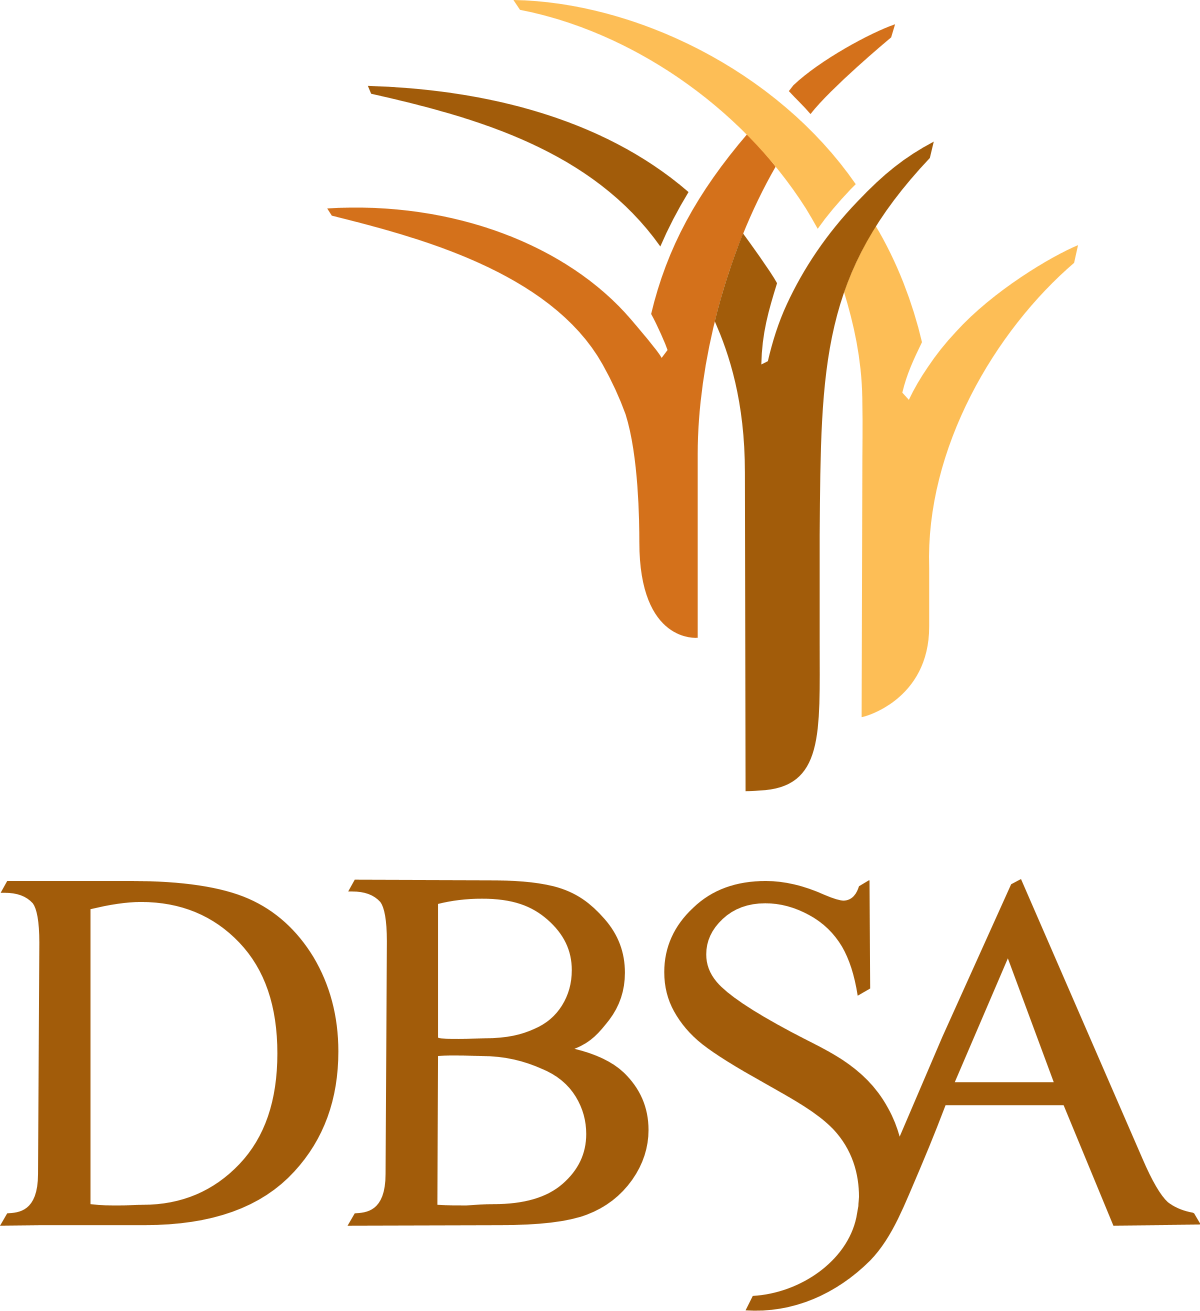 Development Bank of Southern Africa.